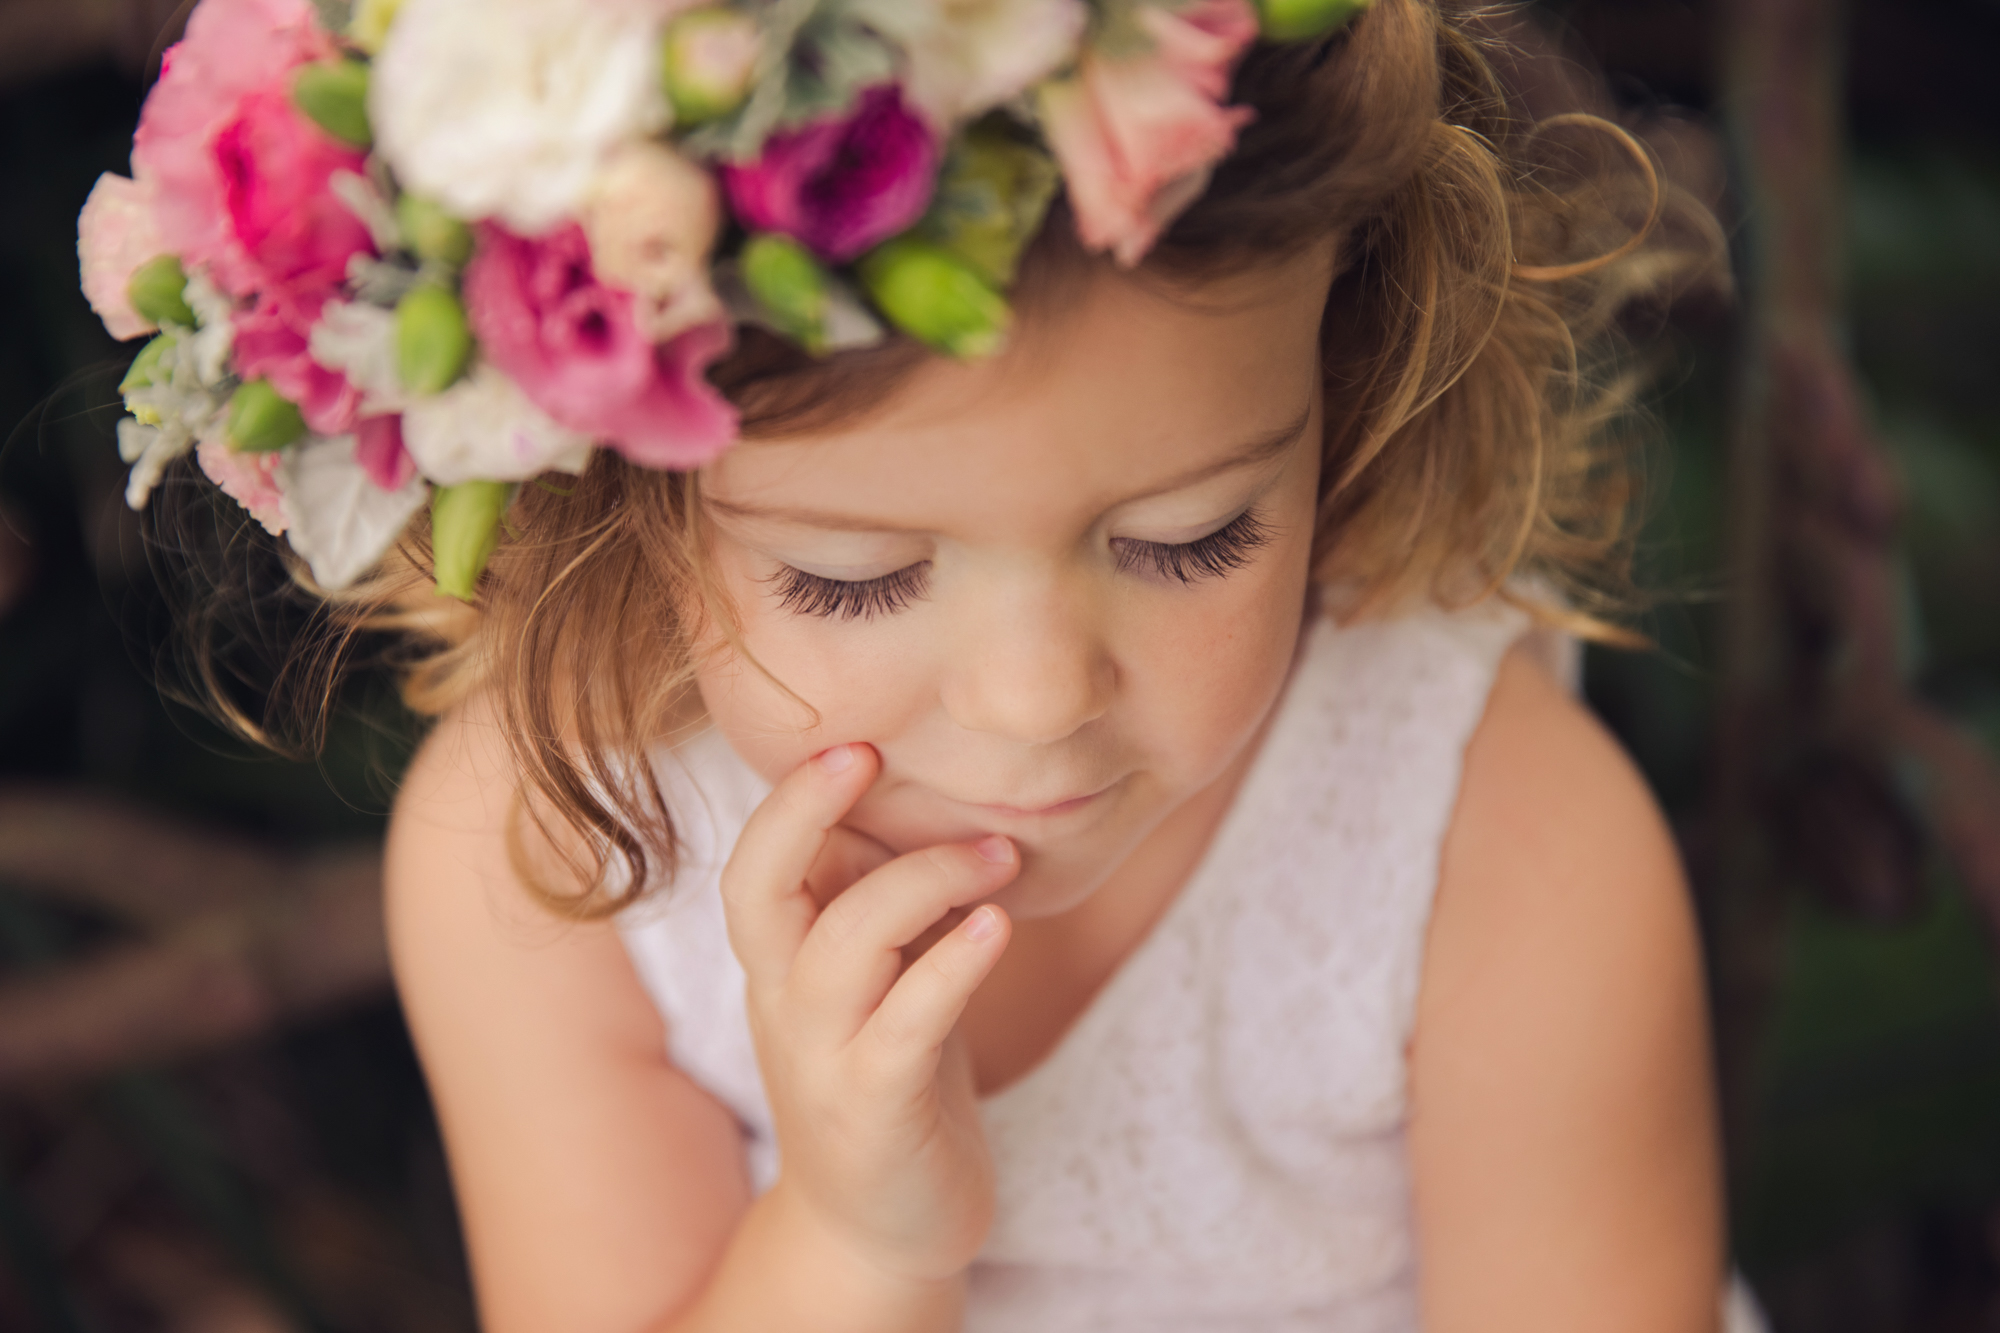 Little Girl-Floral Headpiece-Flowers-Wonder